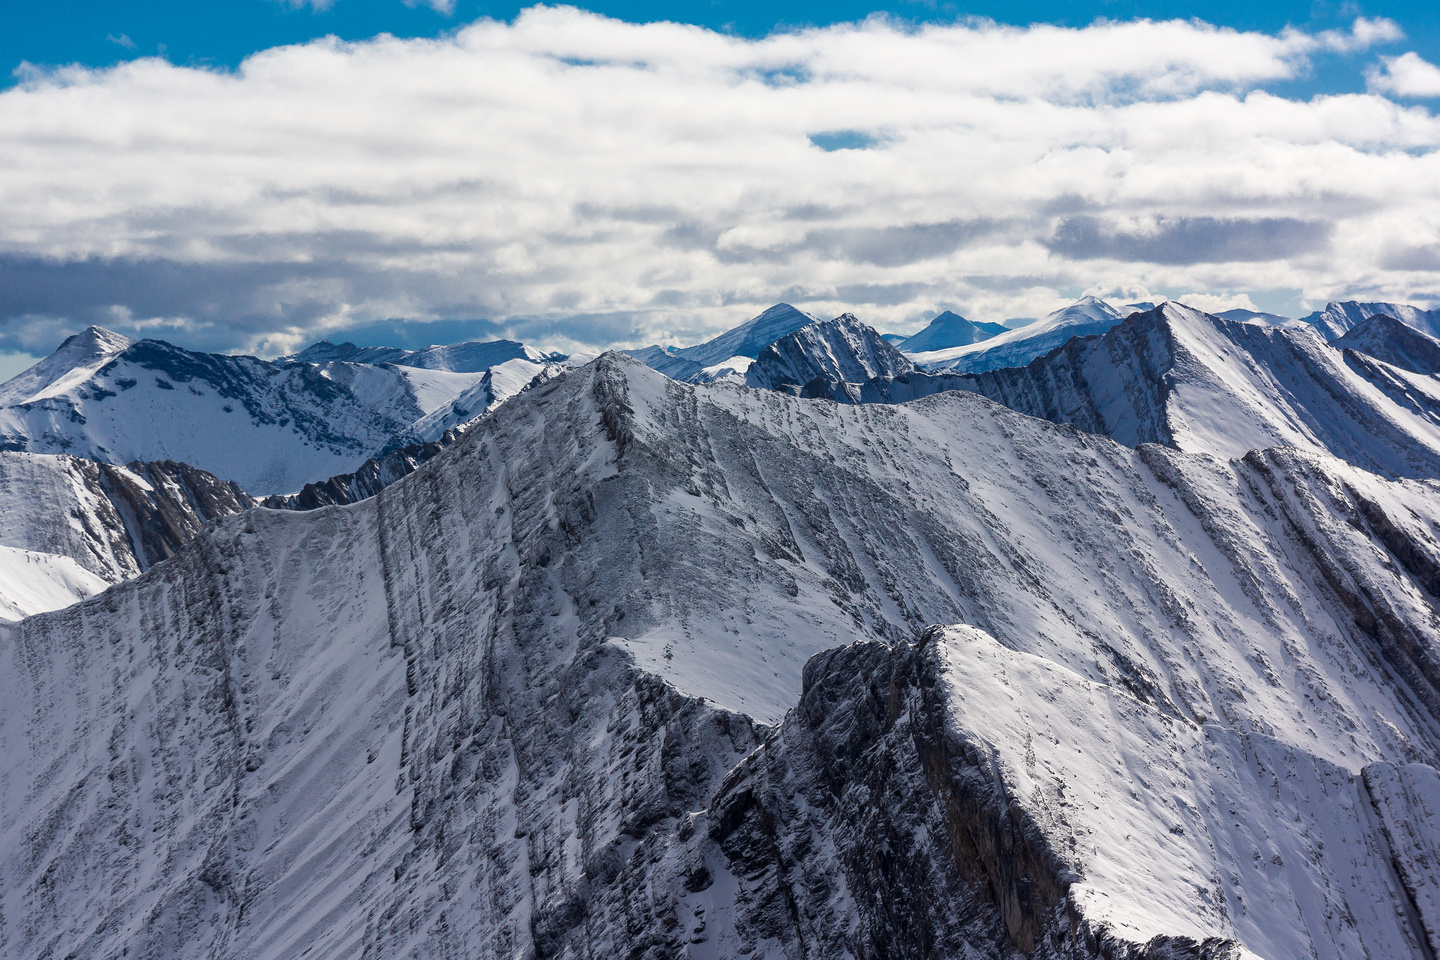 Looking over the ridge traverse to the summit of McDougall.